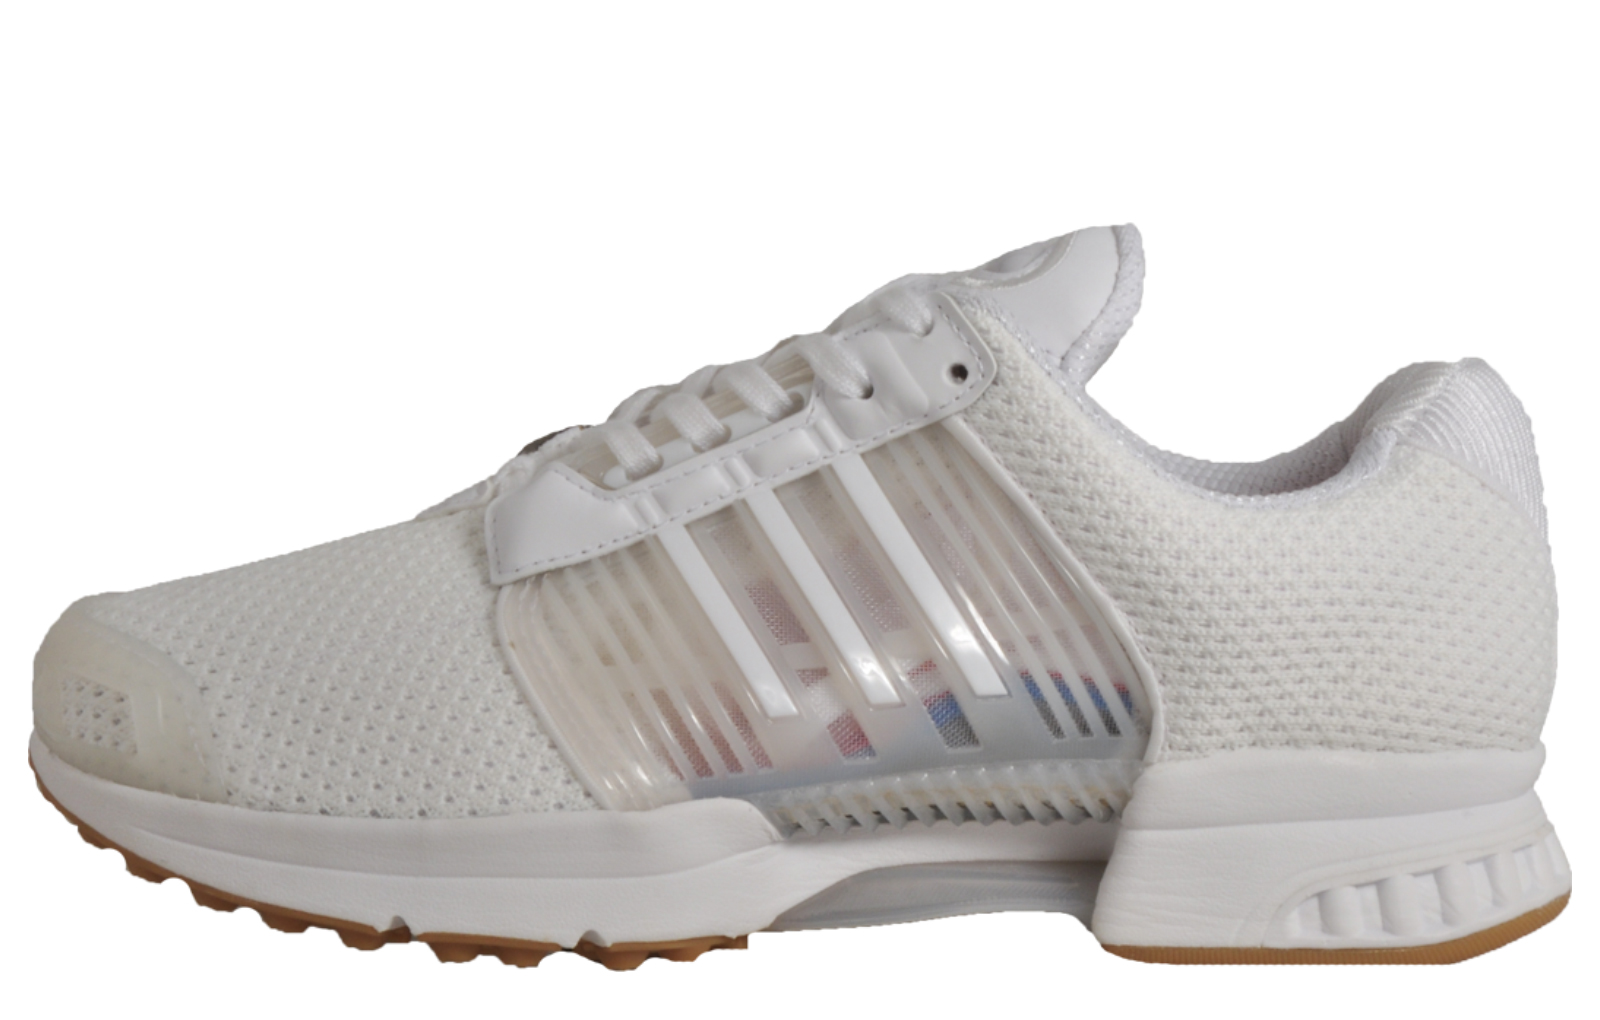 on sale 77fc0 189cc Adidas Climacool 1 Mens Running Shoes Fitness Gym Trainers White.  Manufacturers code BA7163